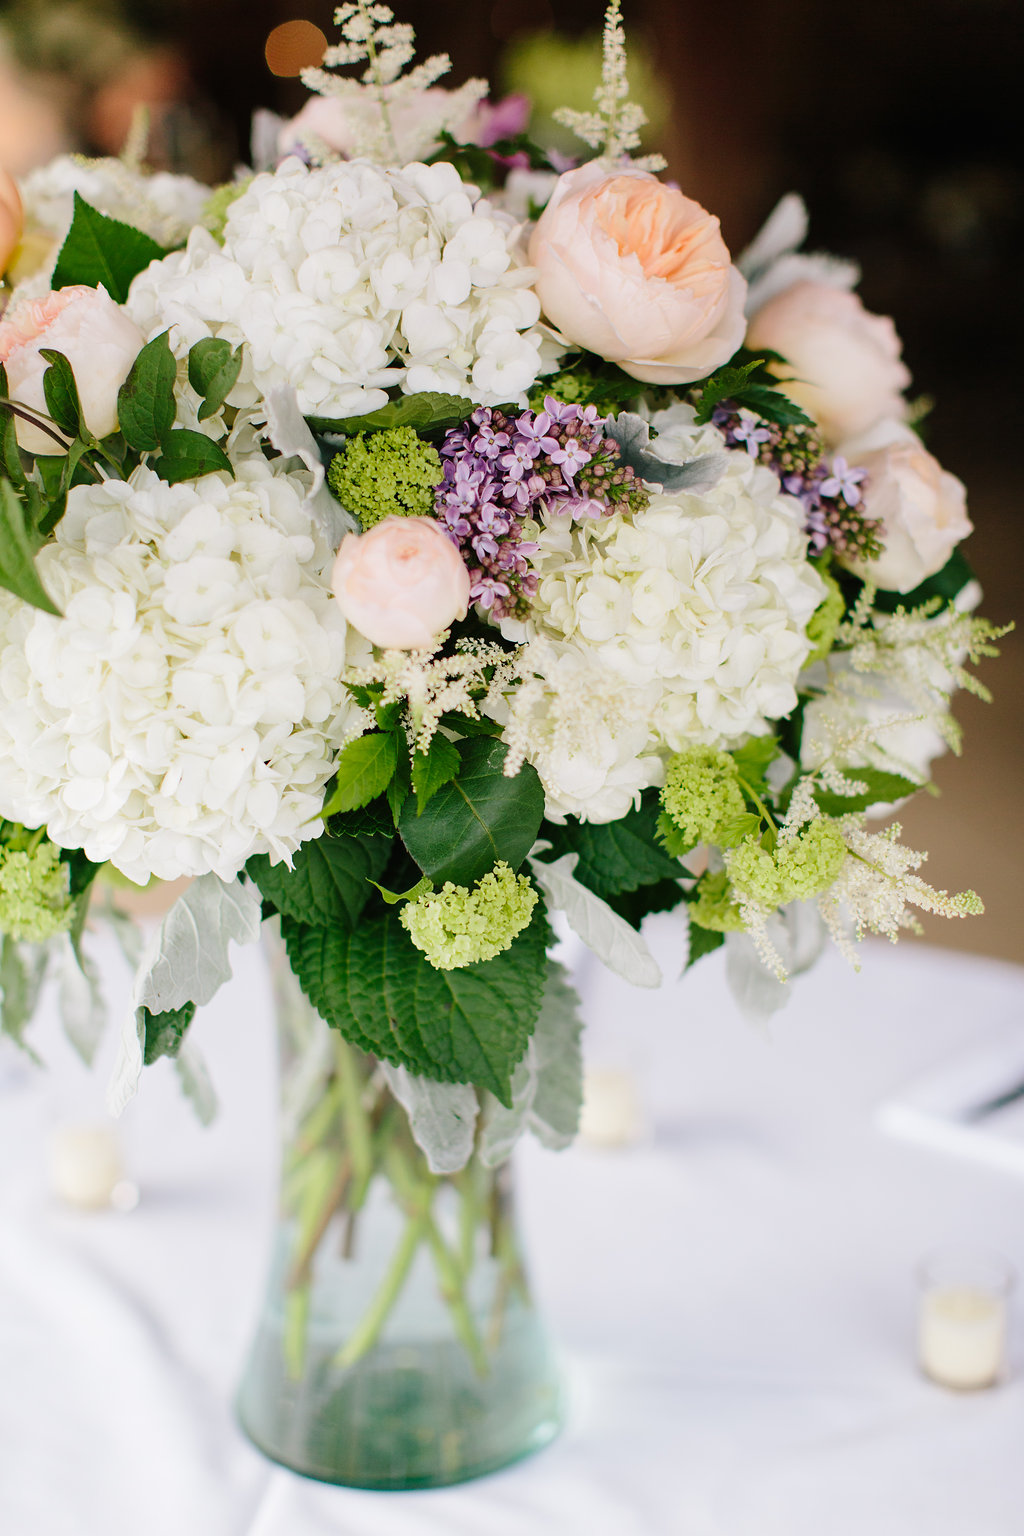 wedding-reception-flower-arrangement-greg-boulus-events-augusta-georgia